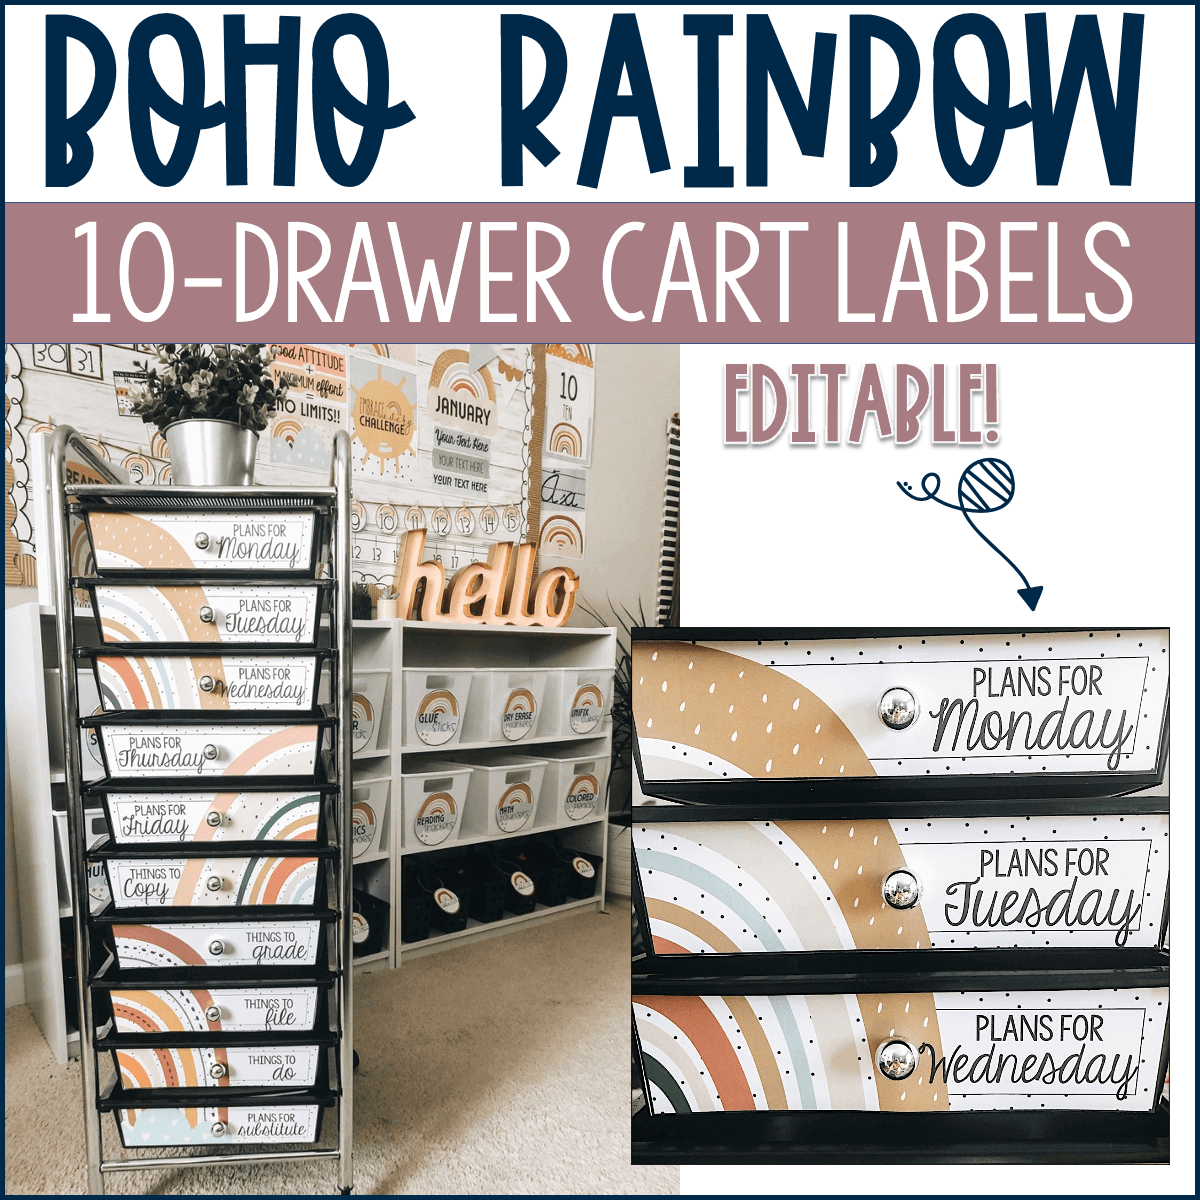 The 10 drawer cart is a fantastic way to keep your classroom organized this school year.